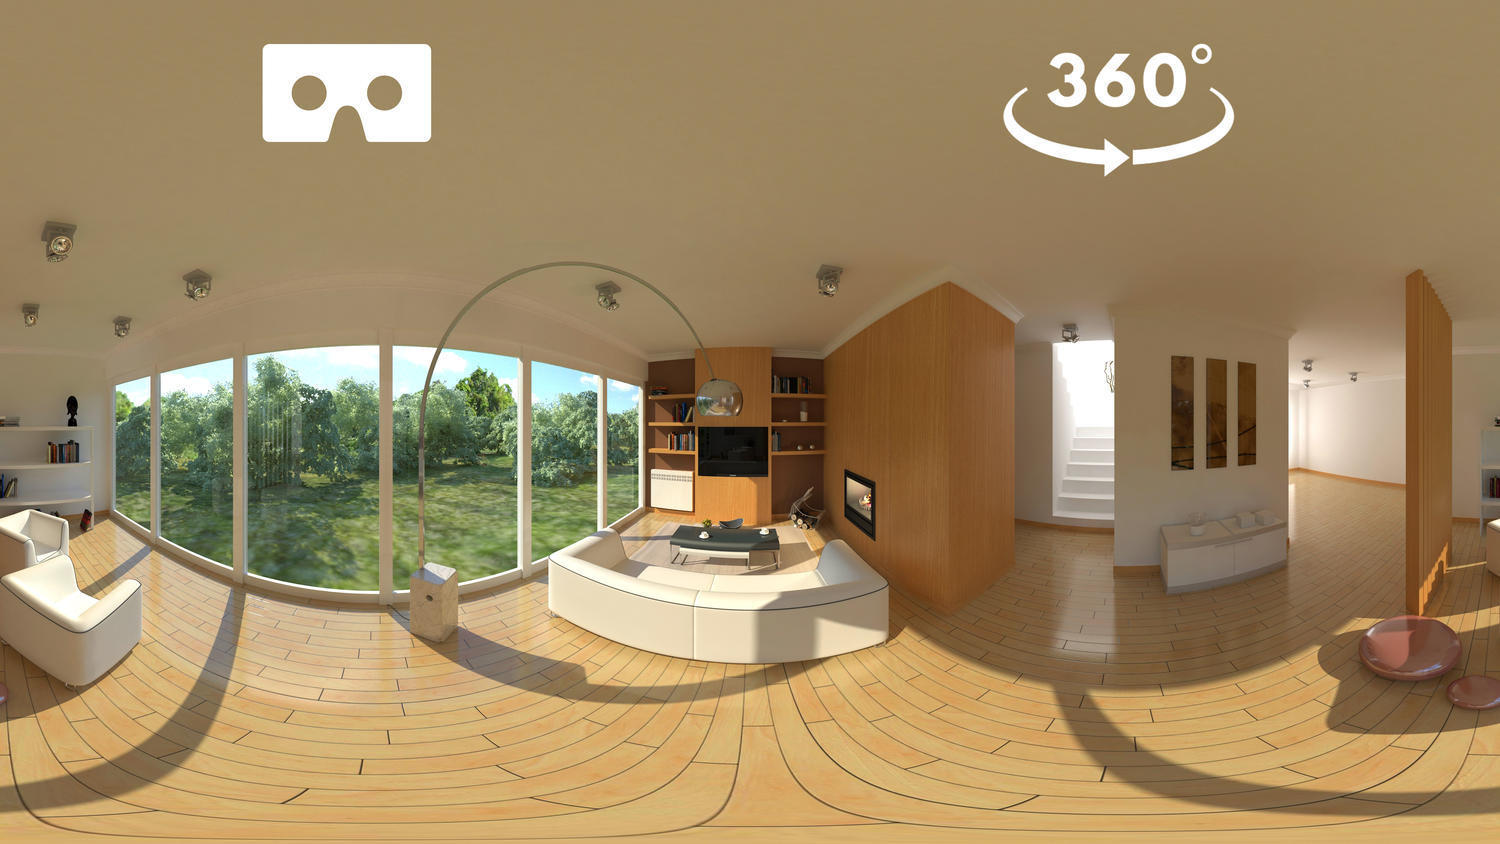 3D Infoarchitecture Visualization and 360 Virtual Reality by Sergi0Ara - 104915